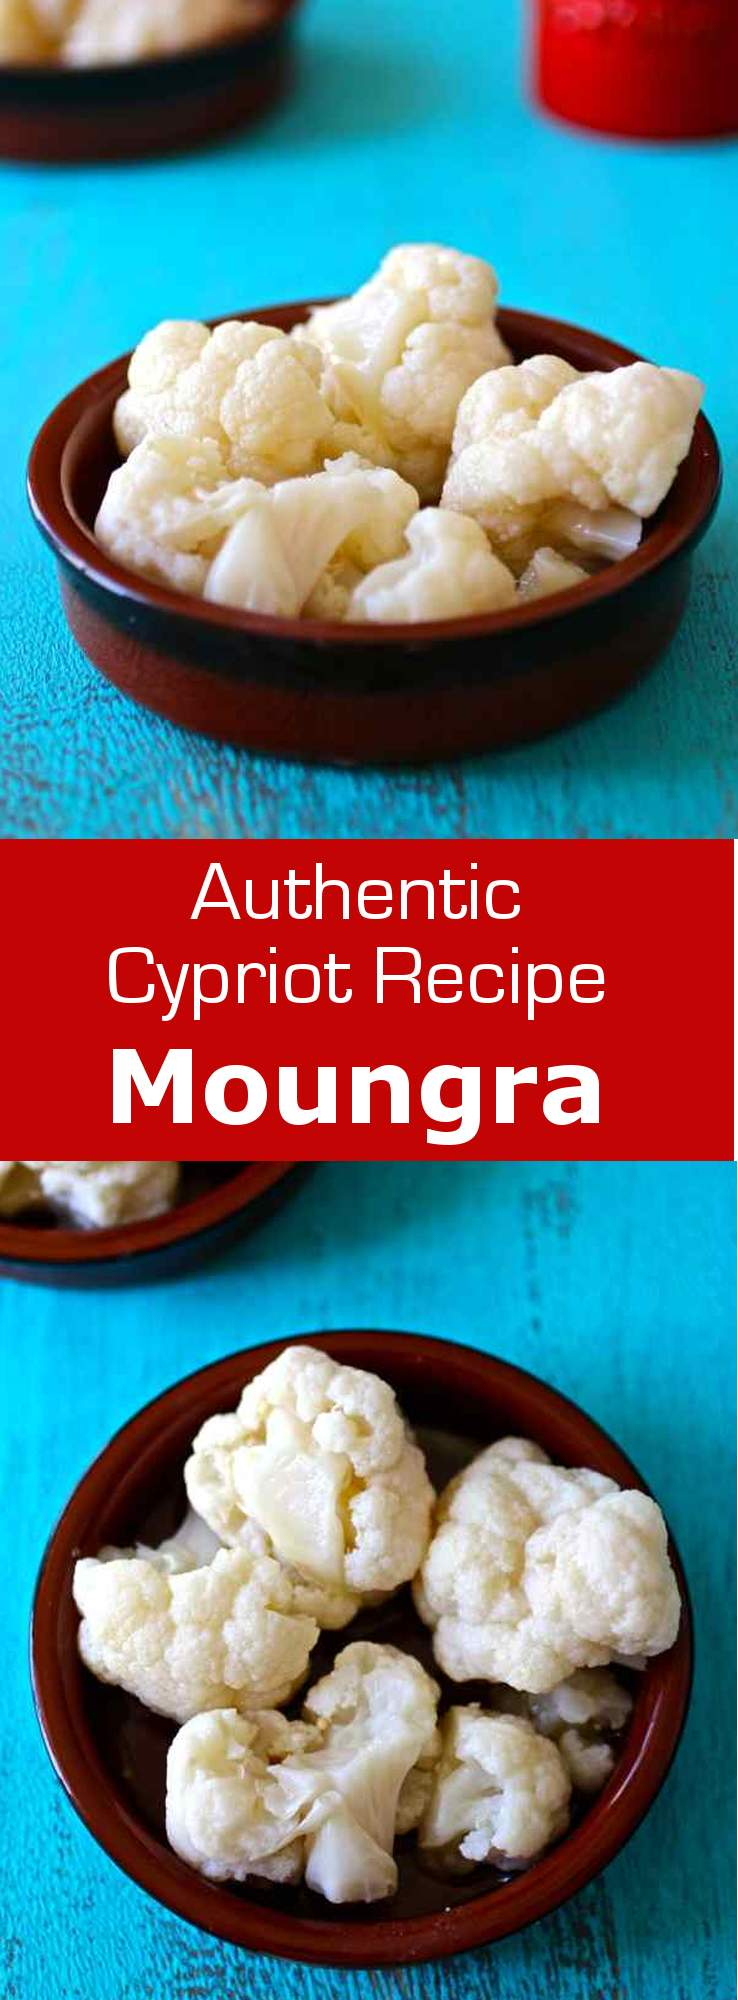 Moungra is a traditional Cypriot mezze which consists in cauliflower pickled in fermented bread dough and typically served on Clean Monday. #vegetarian #cyprus